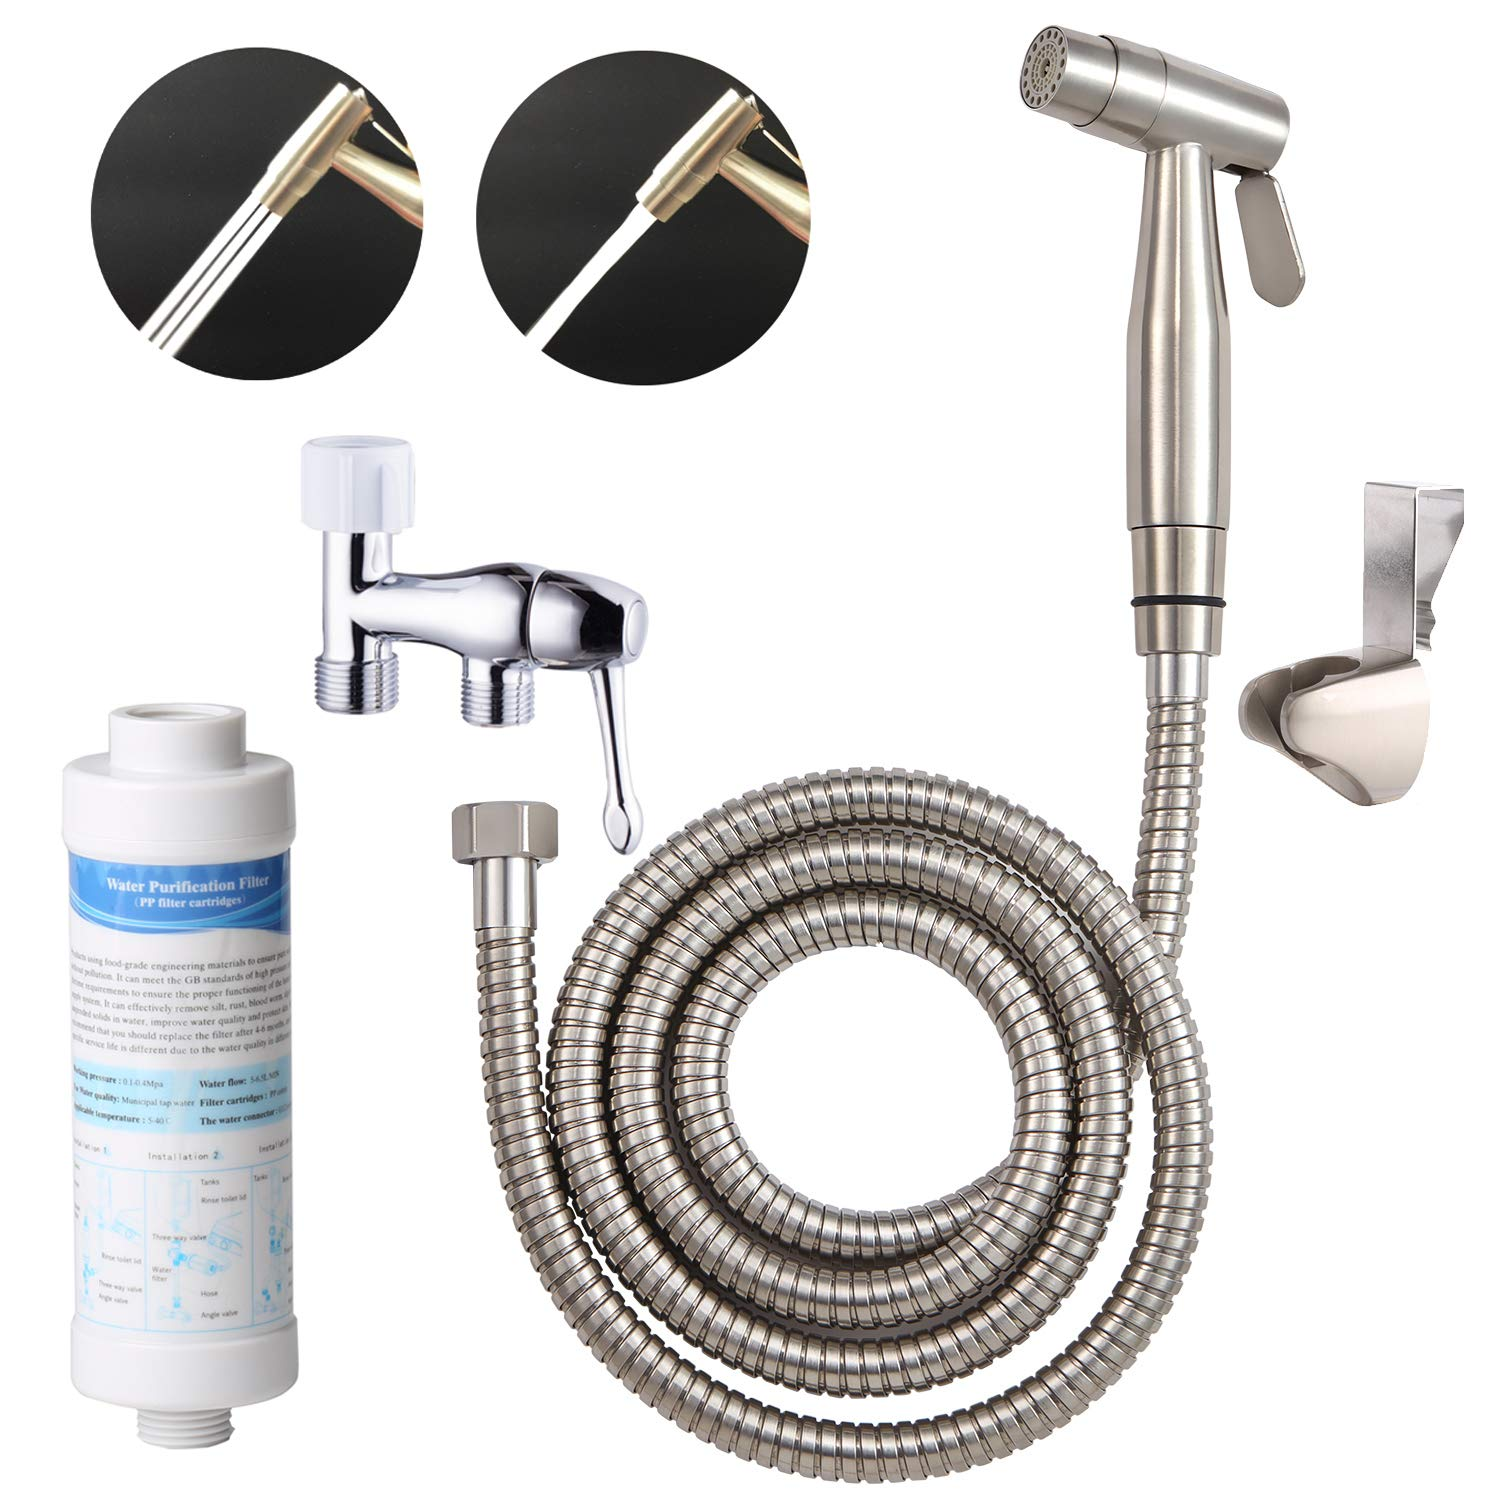 Home Improvement All Copper Handheld Shower Head Multi-function Pressurized Spray Gun Cylindrical Portable Small Nozzle Bringing More Convenience To The People In Their Daily Life Shower Equipment